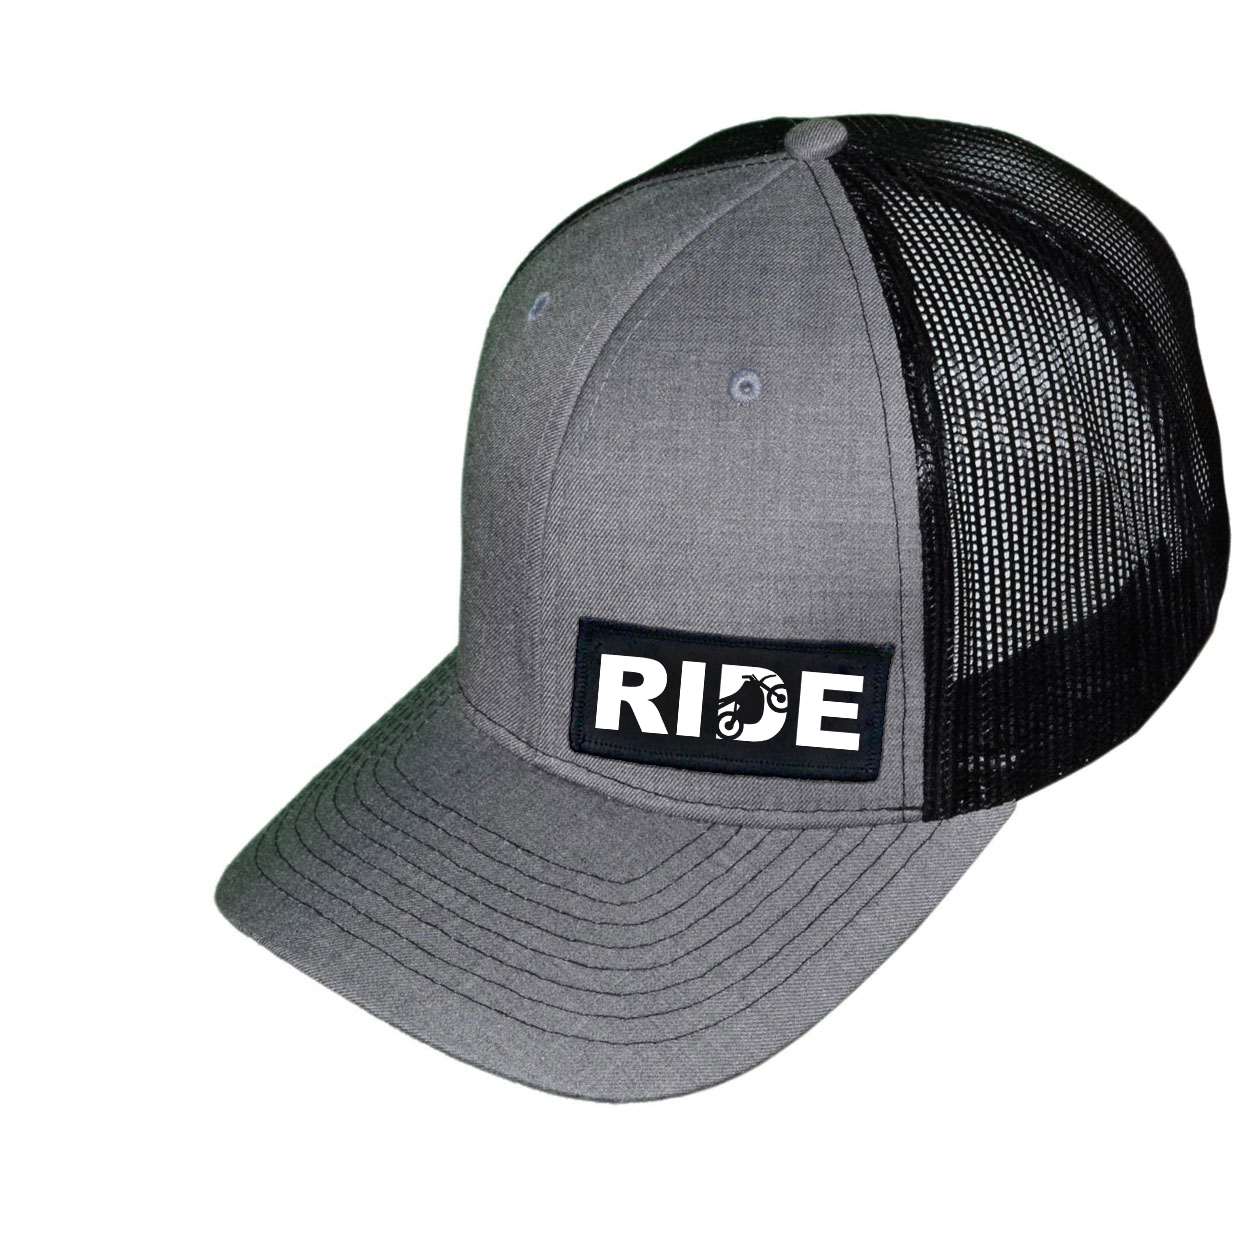 Ride Moto Logo Night Out Woven Patch Snapback Trucker Hat Heather Gray/Black (White Logo)